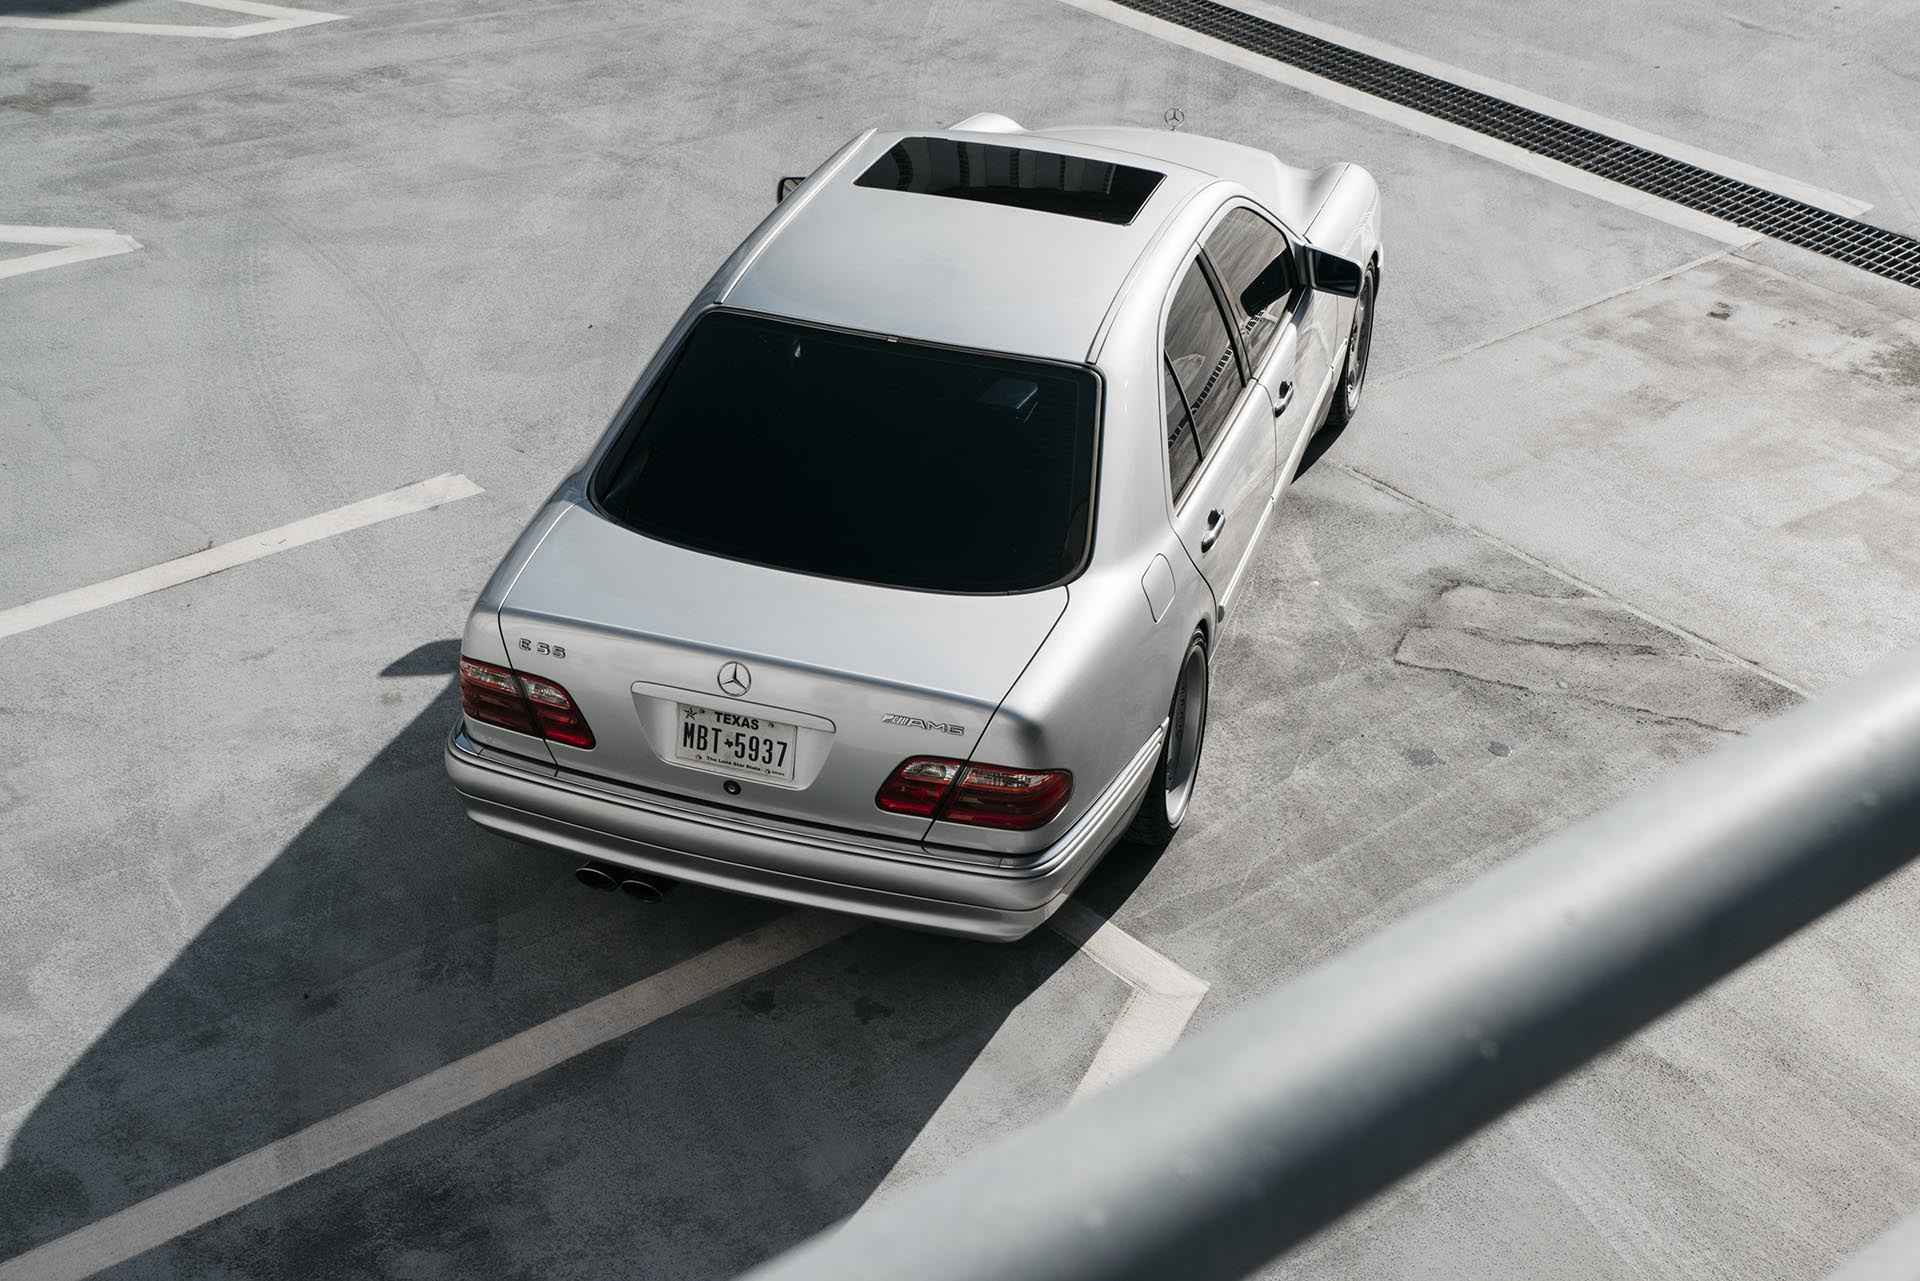 17_Mercedes-Benz E55 AMG manual swapped rear